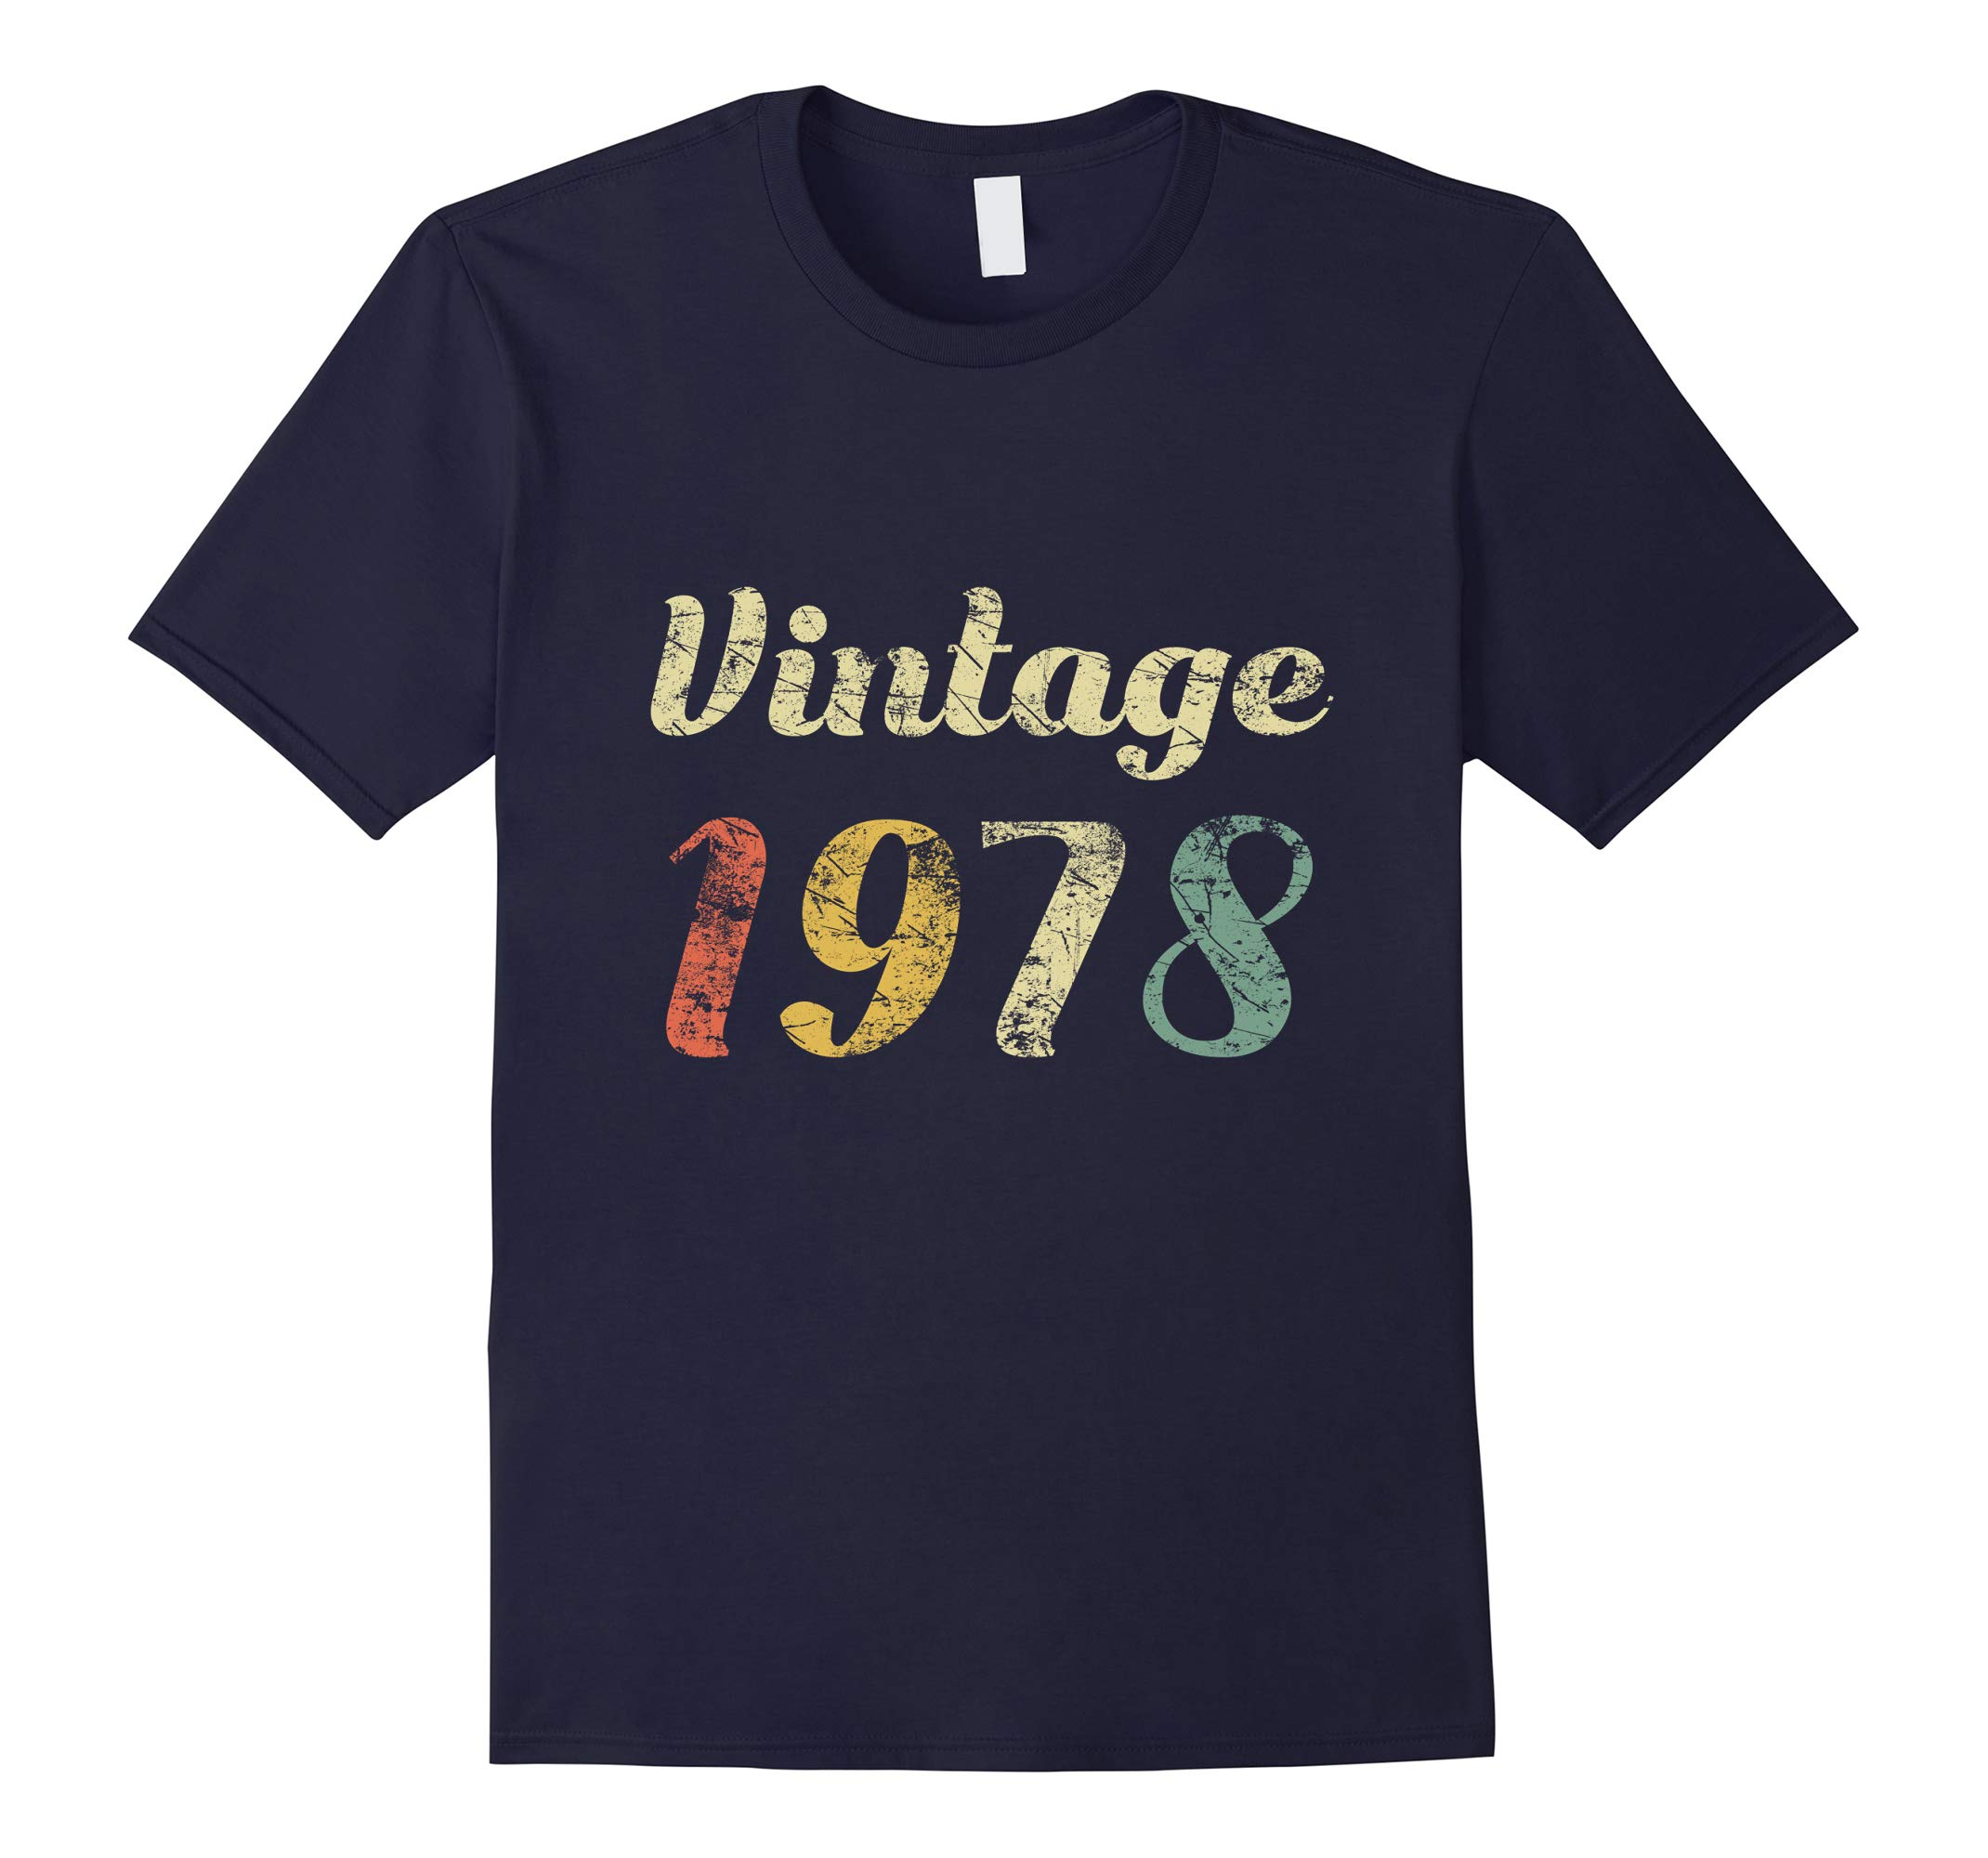 40th Birthday Gift Shirt Distressed Vintage 1978 Tee-RT